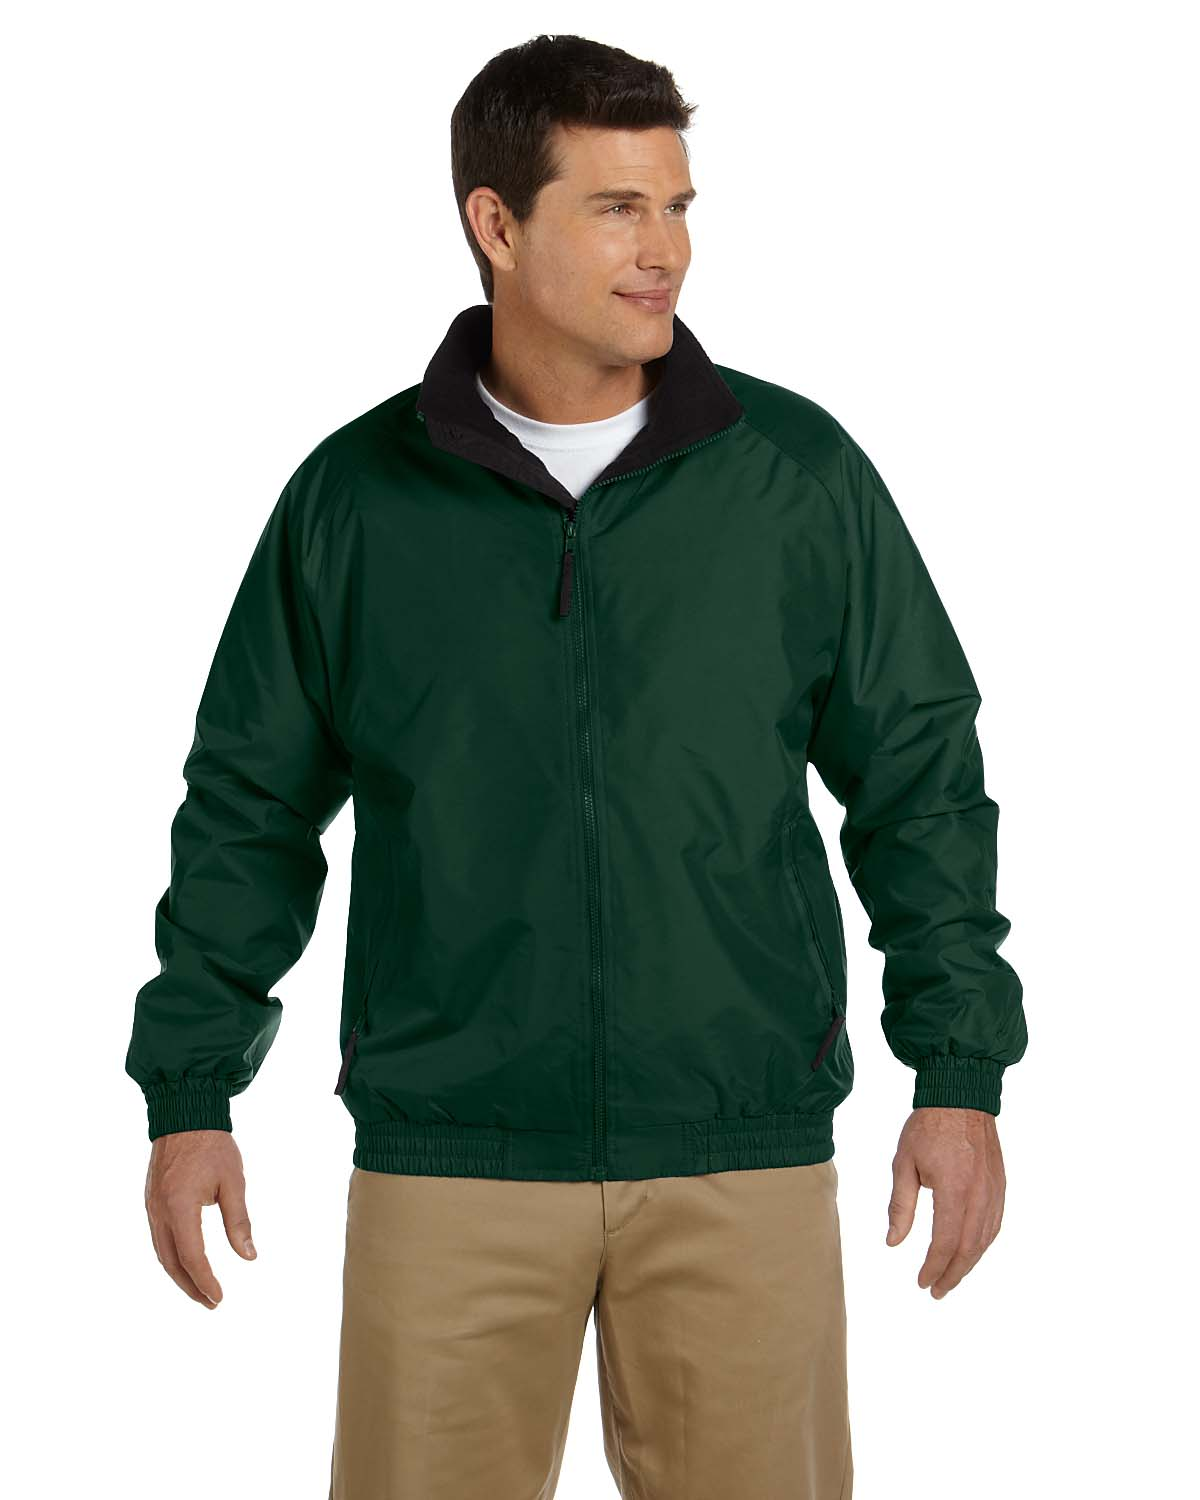 Lined Nylon Jackets 54